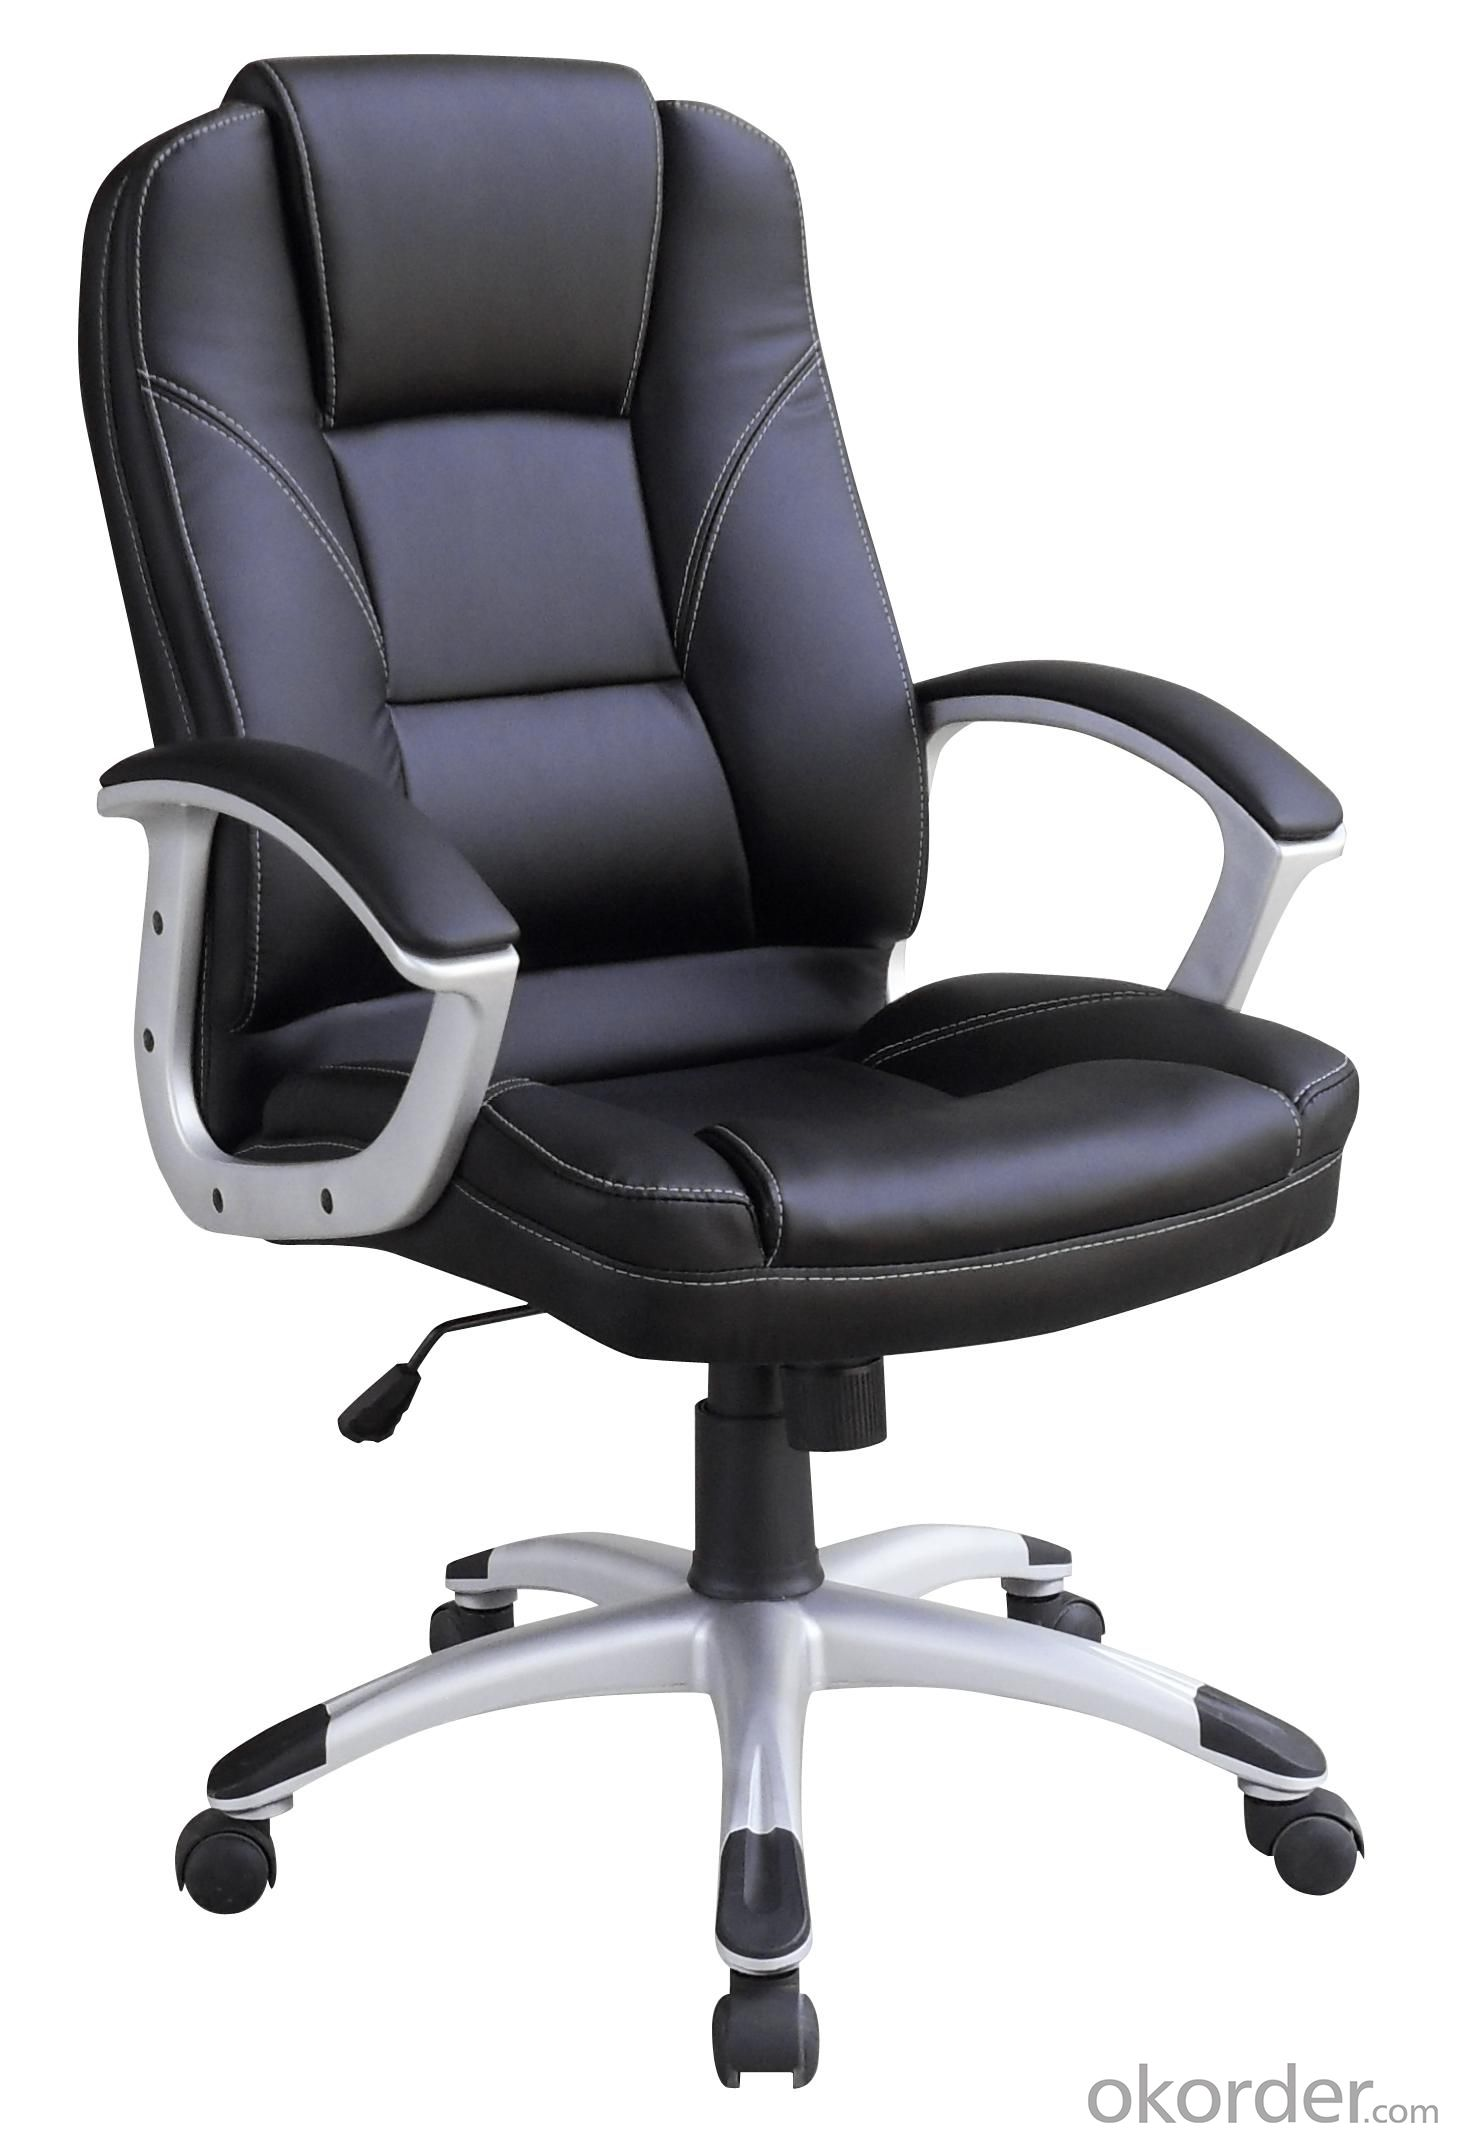 New Design Hot Selling Black PU Front High Quality Office Chair